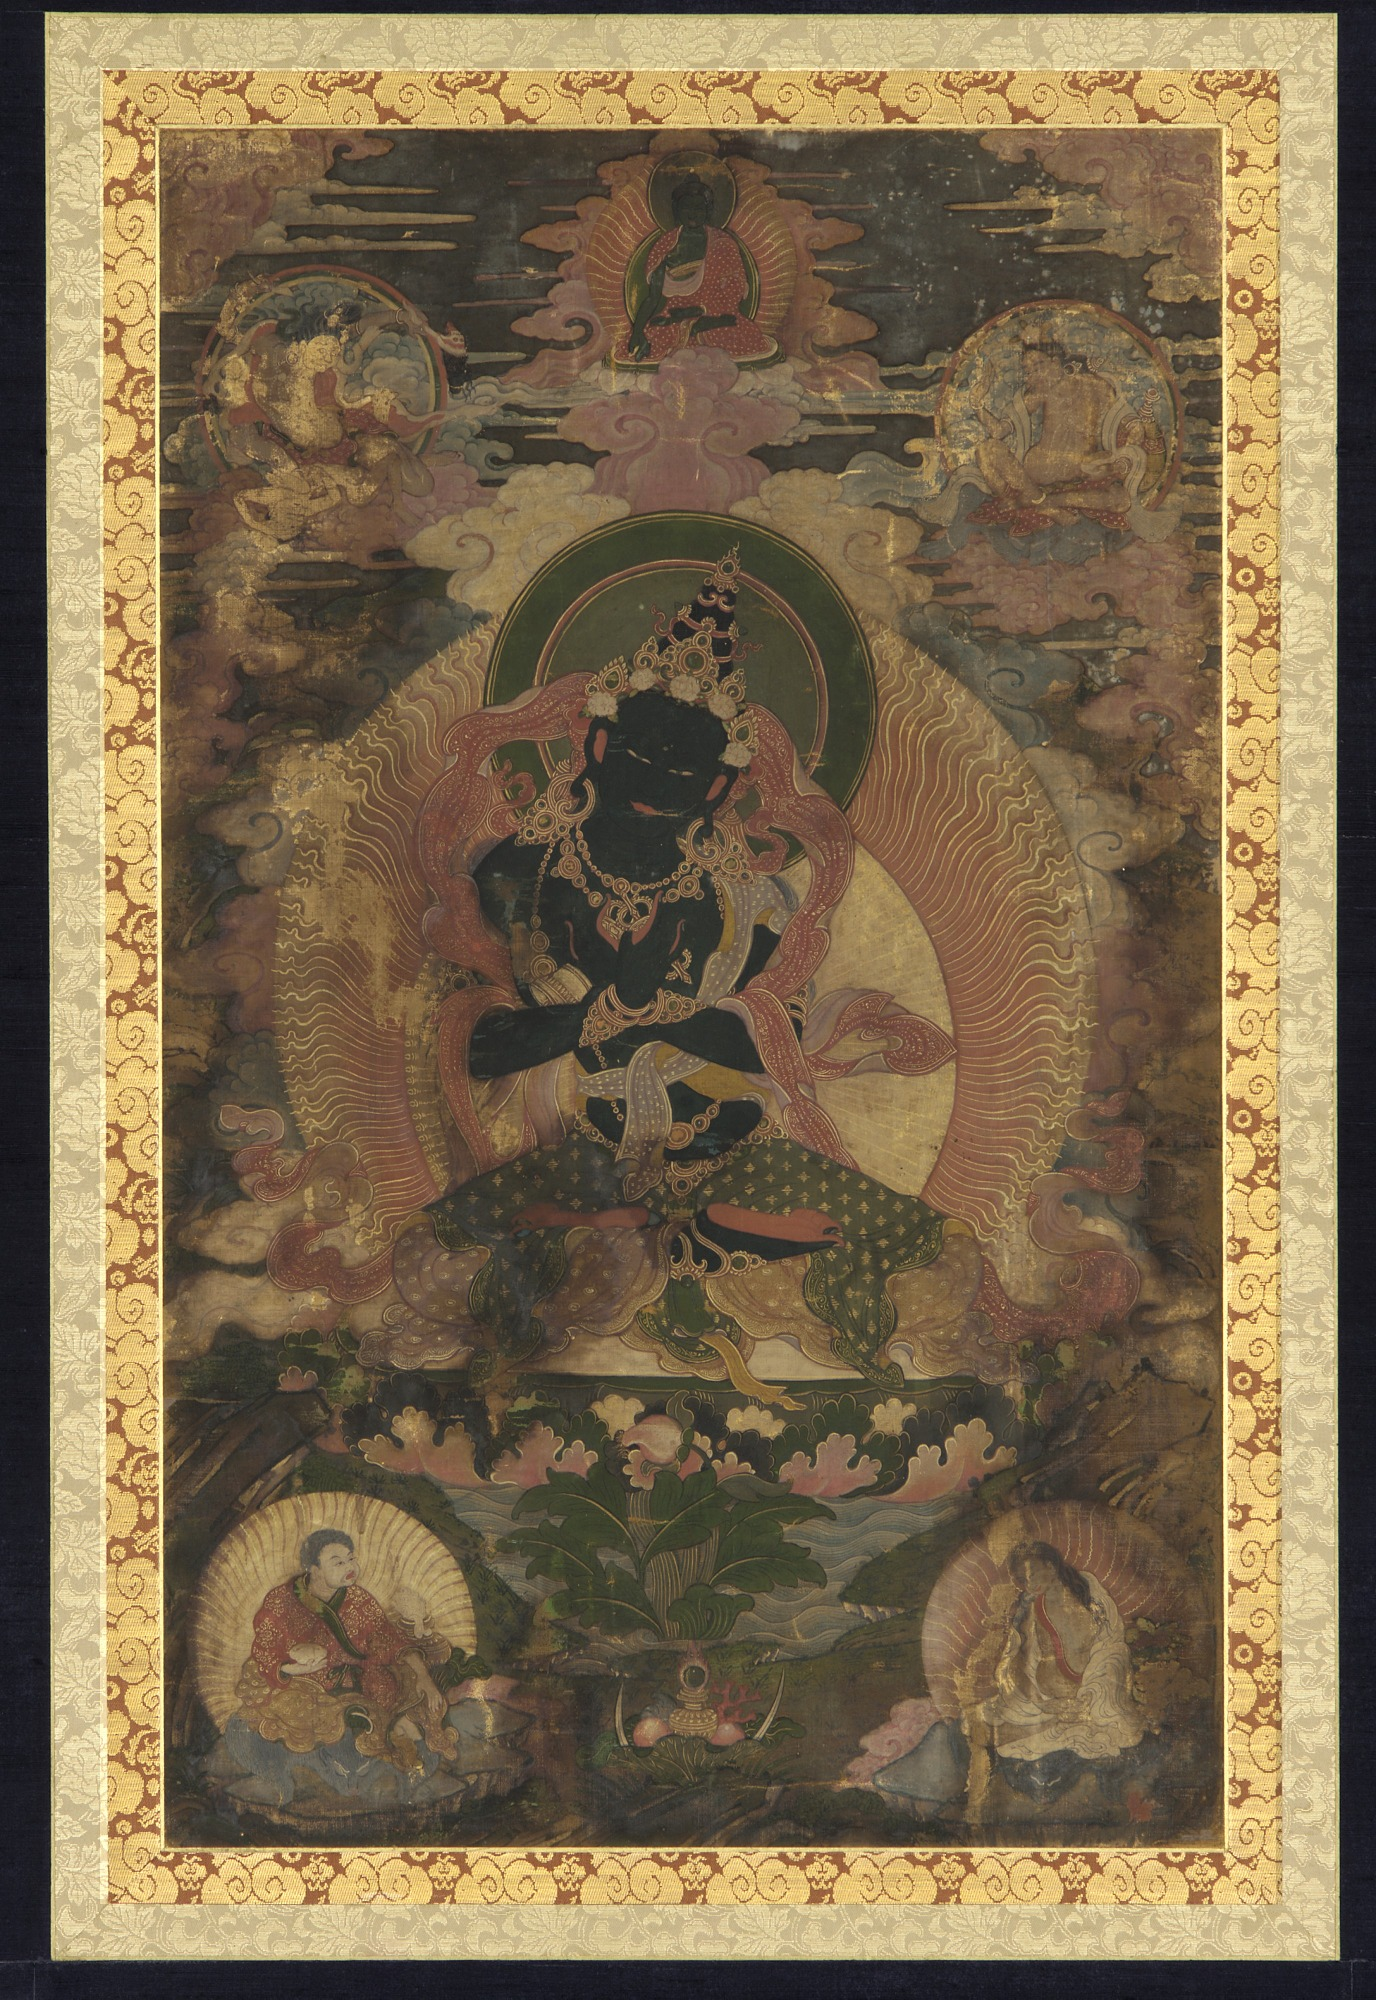 Vajradhara surrounded by smaller figures of Telopa, Naropa, Marpa and Milaraspa